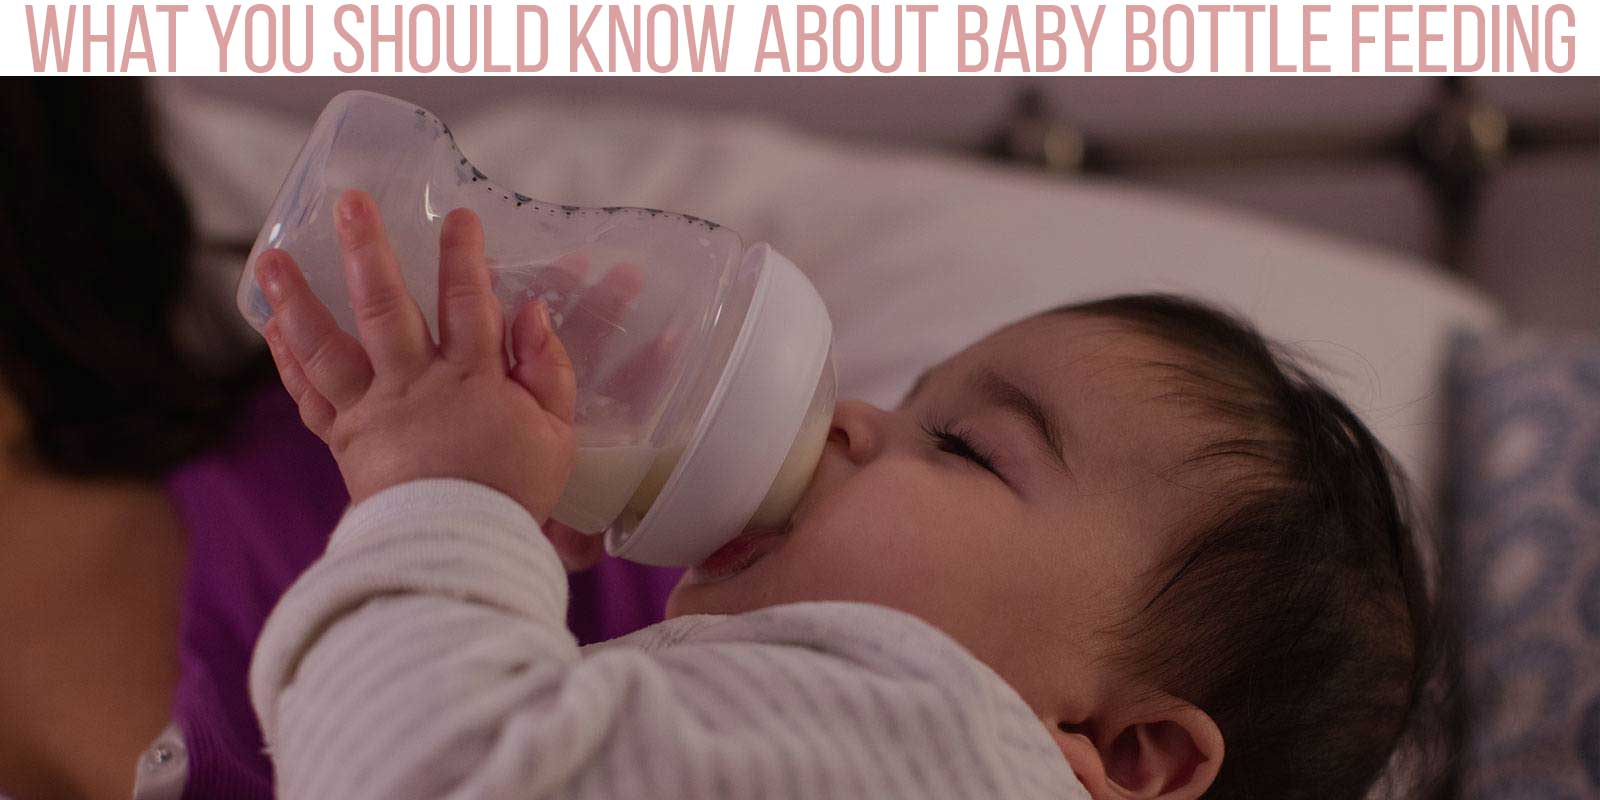 should know about baby bottle feeding